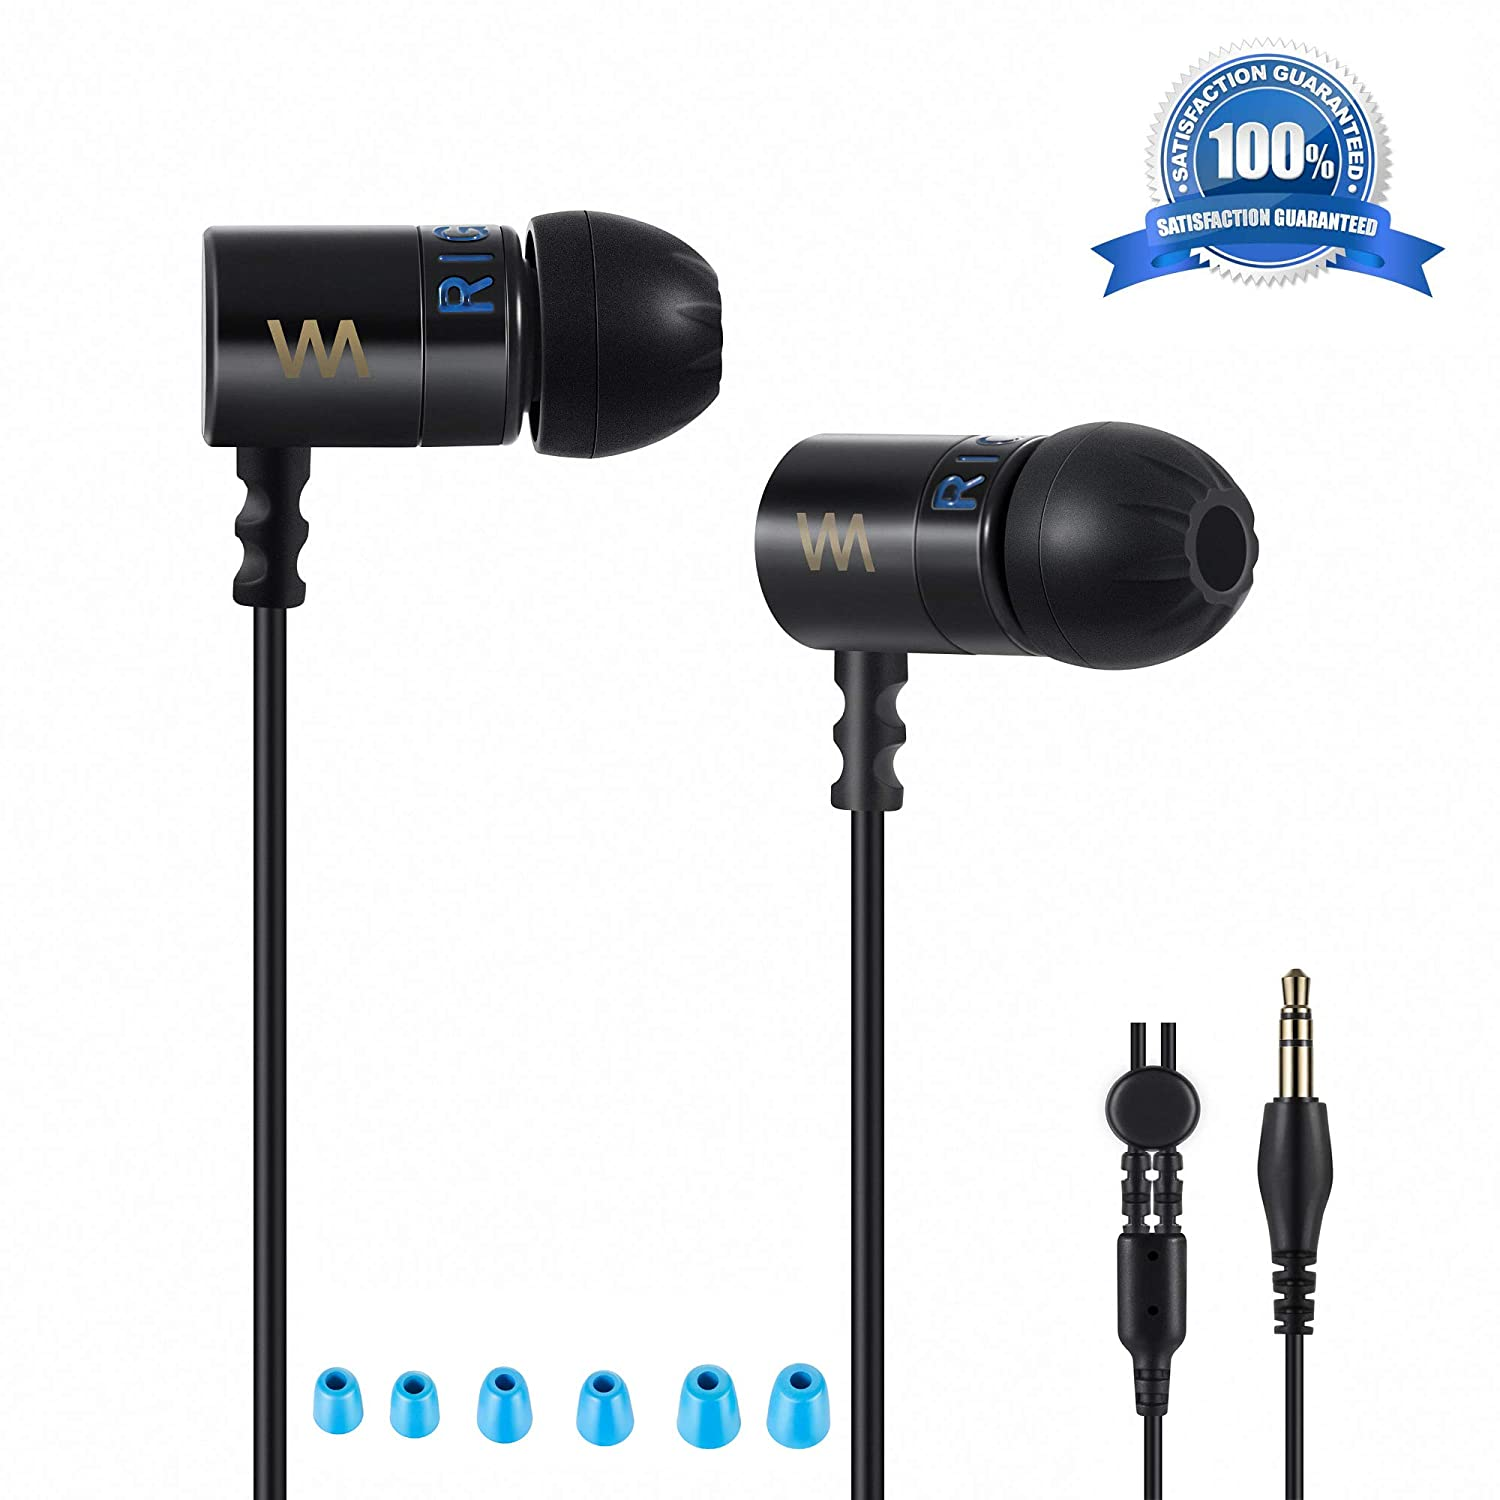 Headphones earbuds wired earphones Bass and Treble mids Quality,Strong noise cancelling Qualities, The Absolute IEM, Ultra Clear stereo Dynamic Dual Drivers